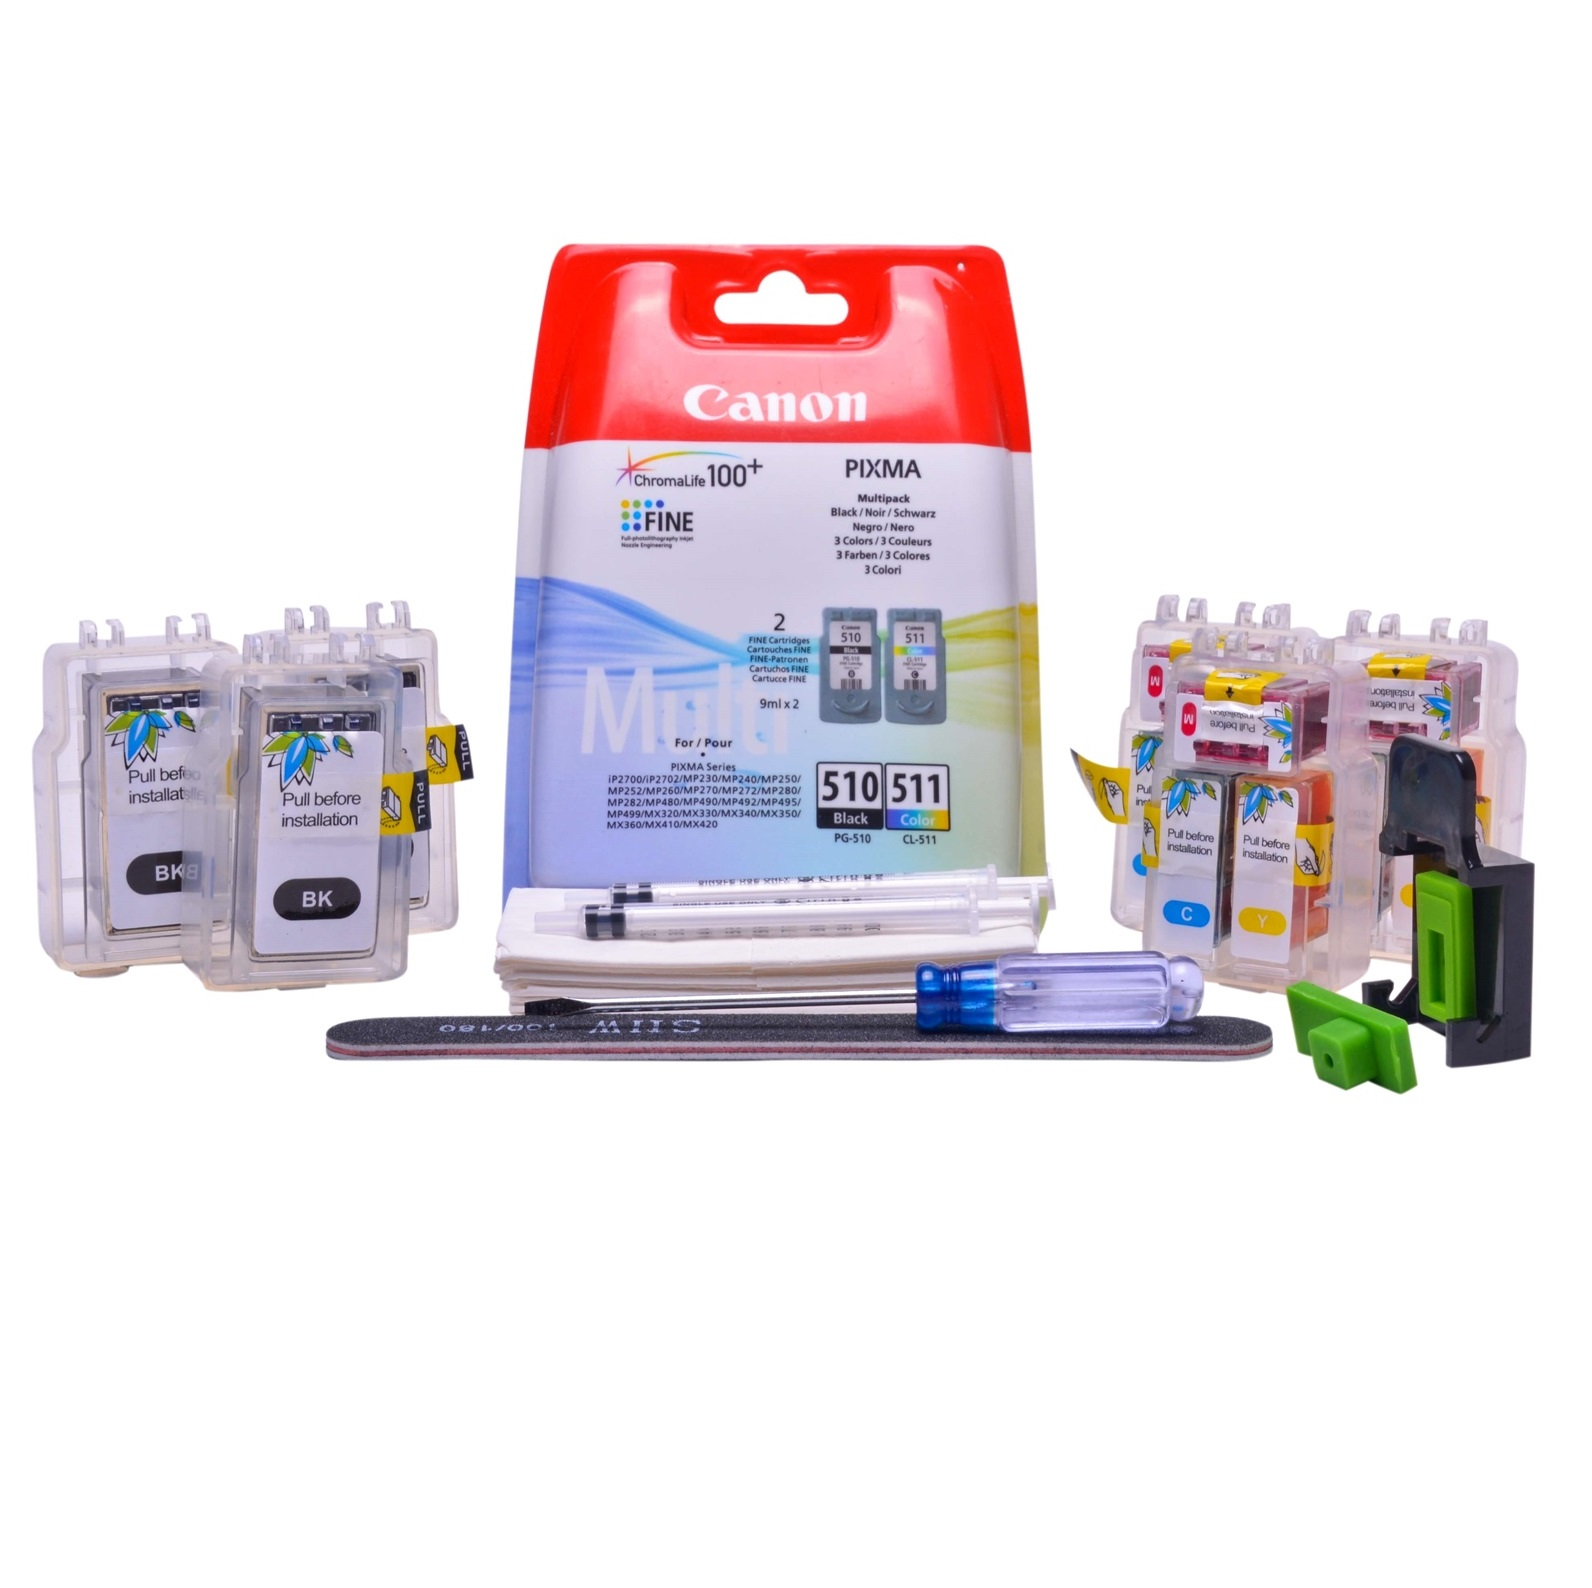 Multipack Cheap printer cartridges for Canon Pixma IP2700 | Refillable dye and pigment ink